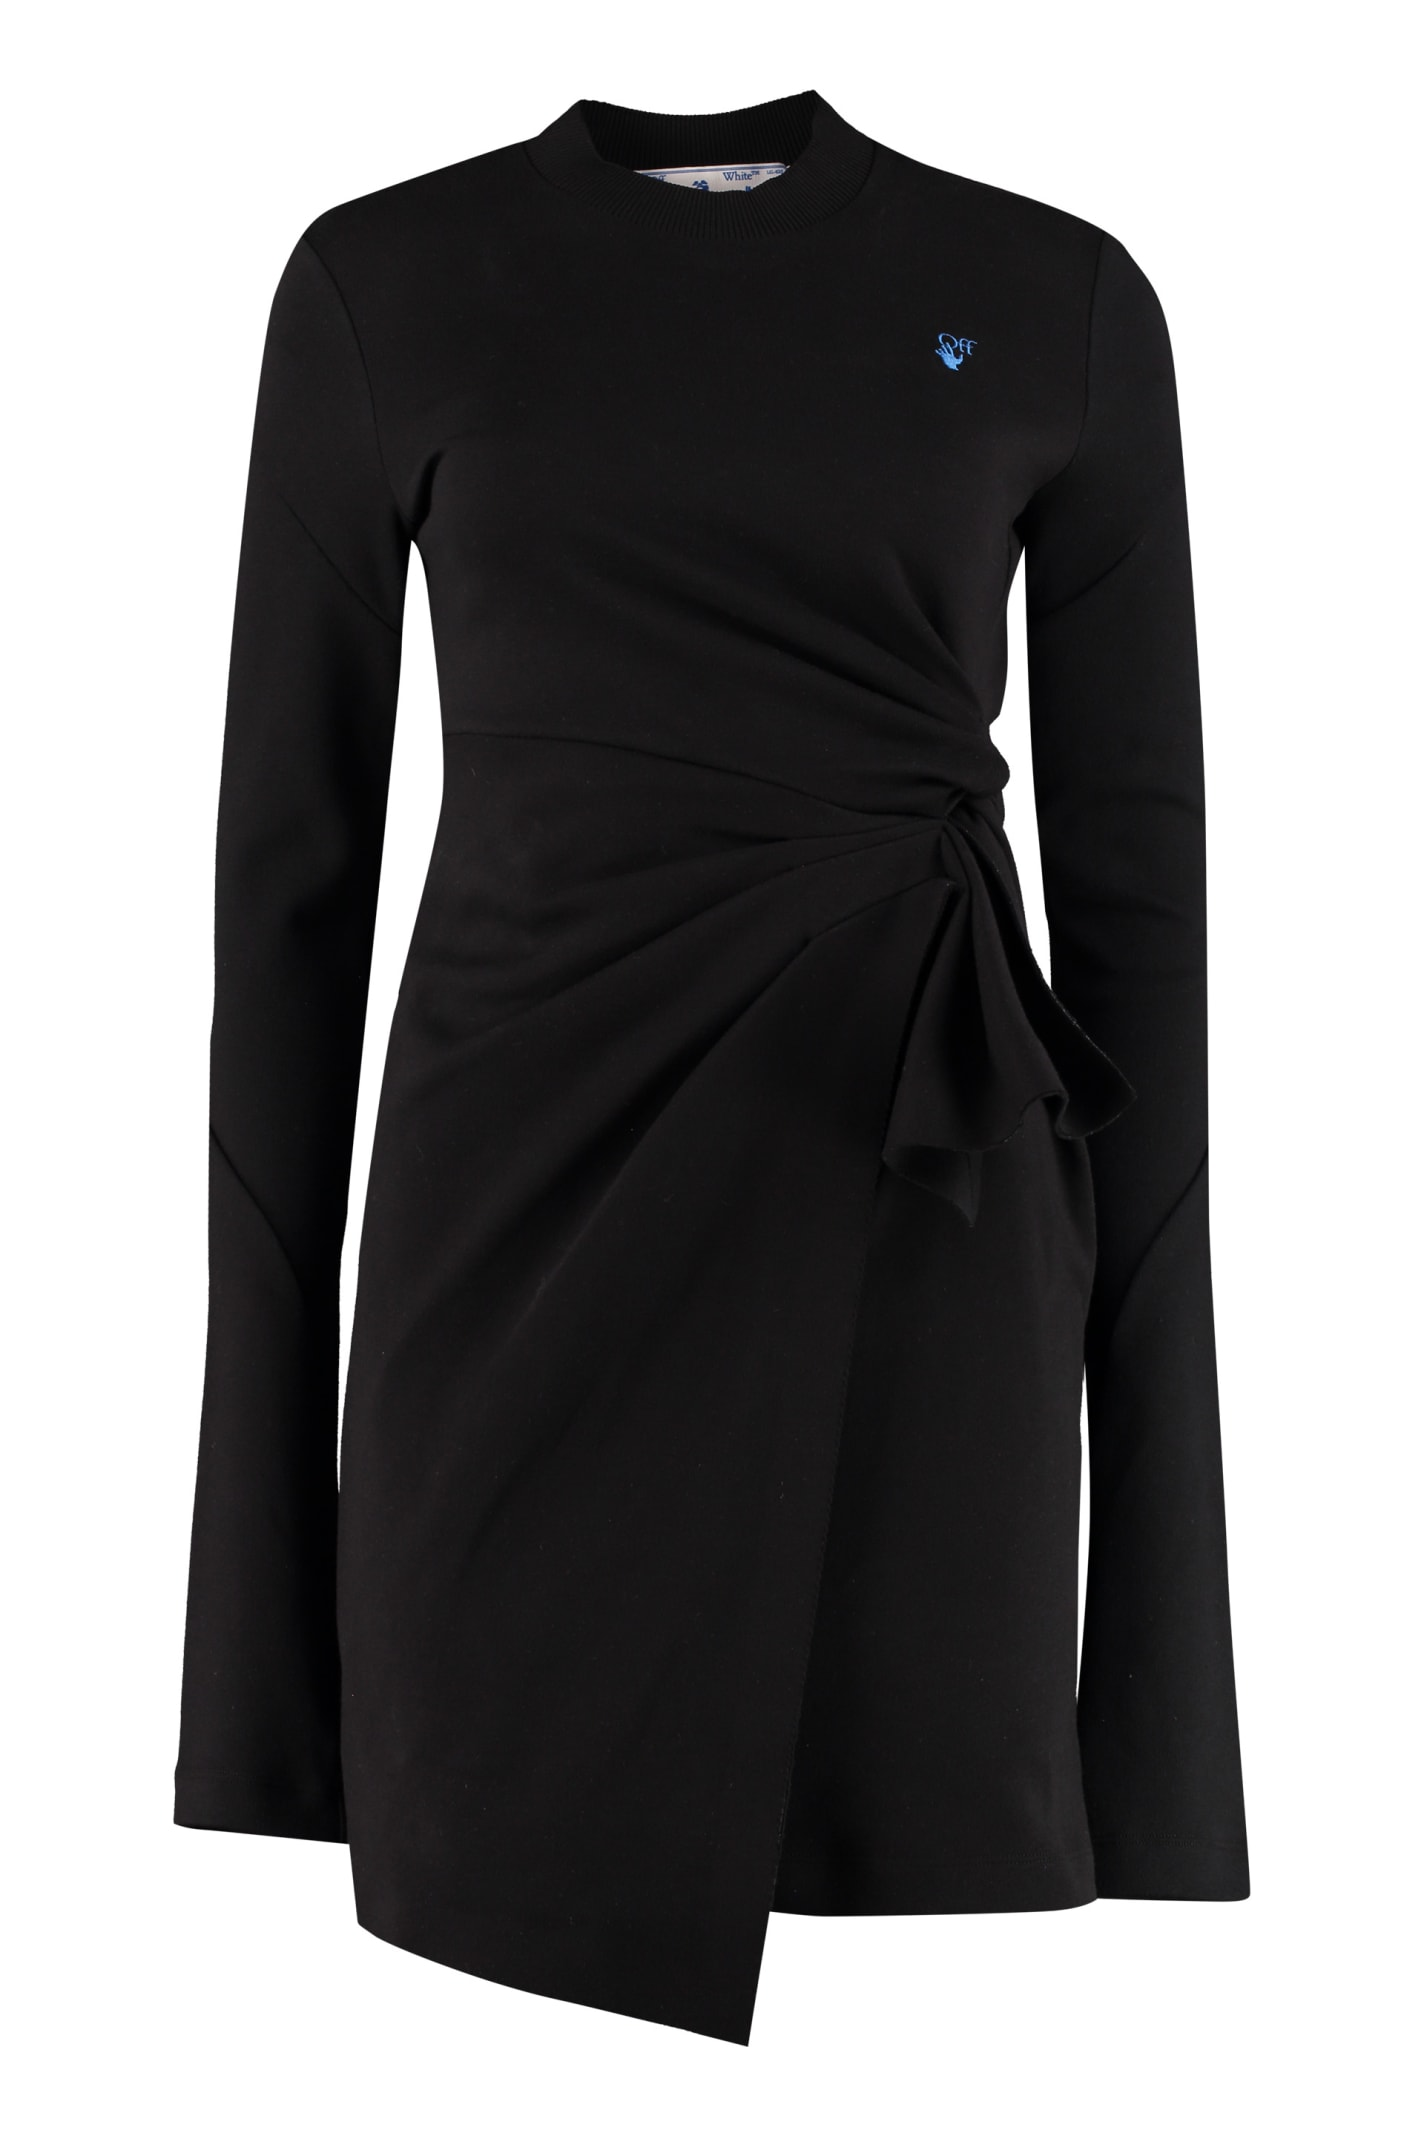 Buy Off-White Draped Sheath Dress online, shop Off-White with free shipping